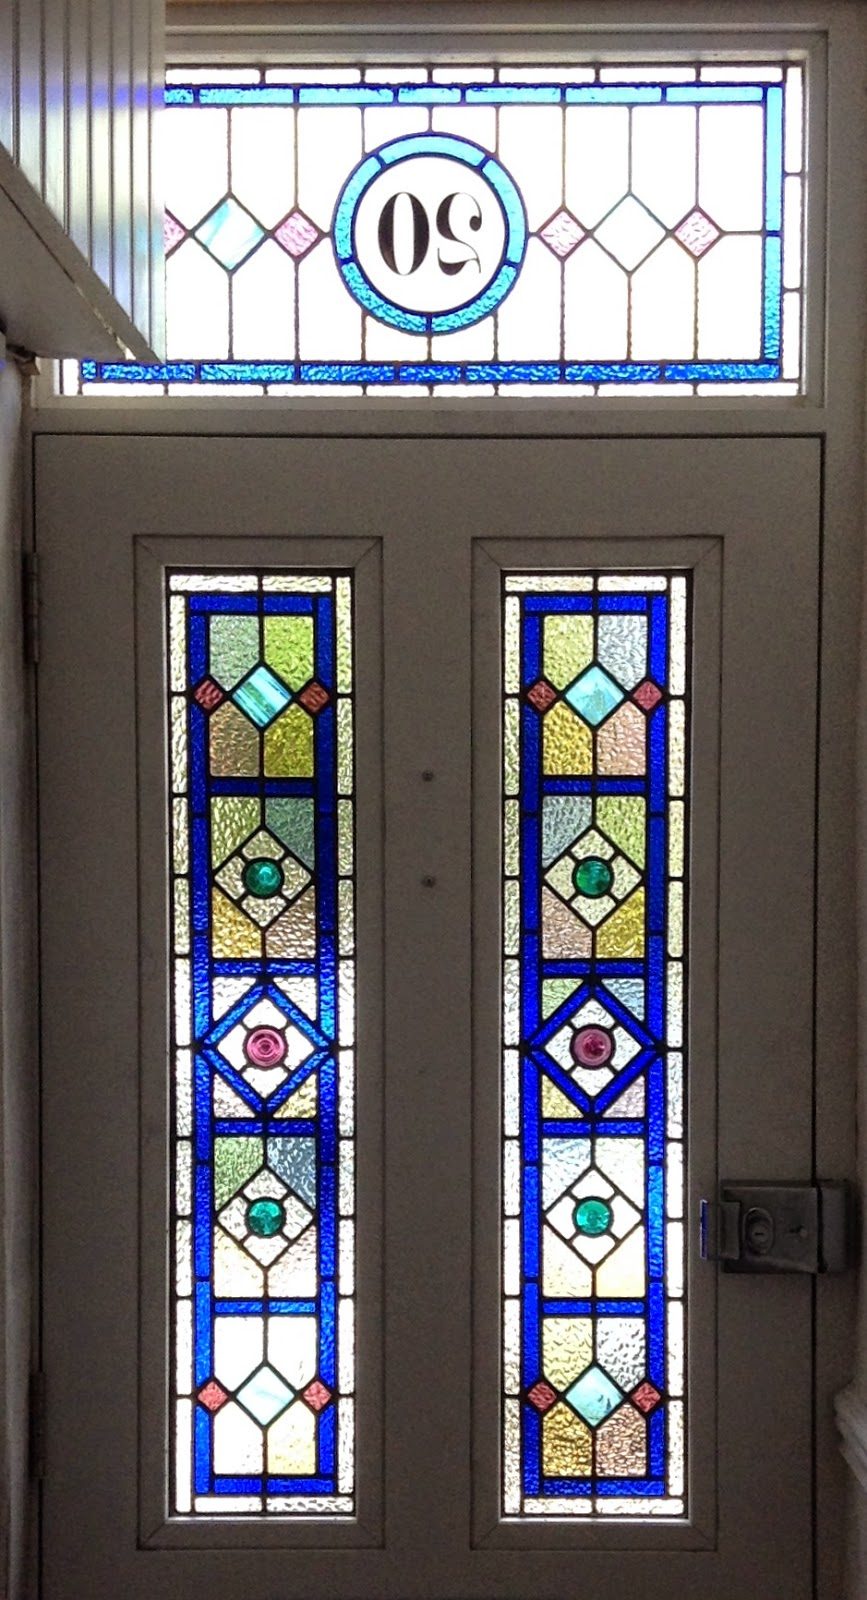 Le Meilleur 1000 Images About Stained Glass On Pinterest Stained Ce Mois Ci